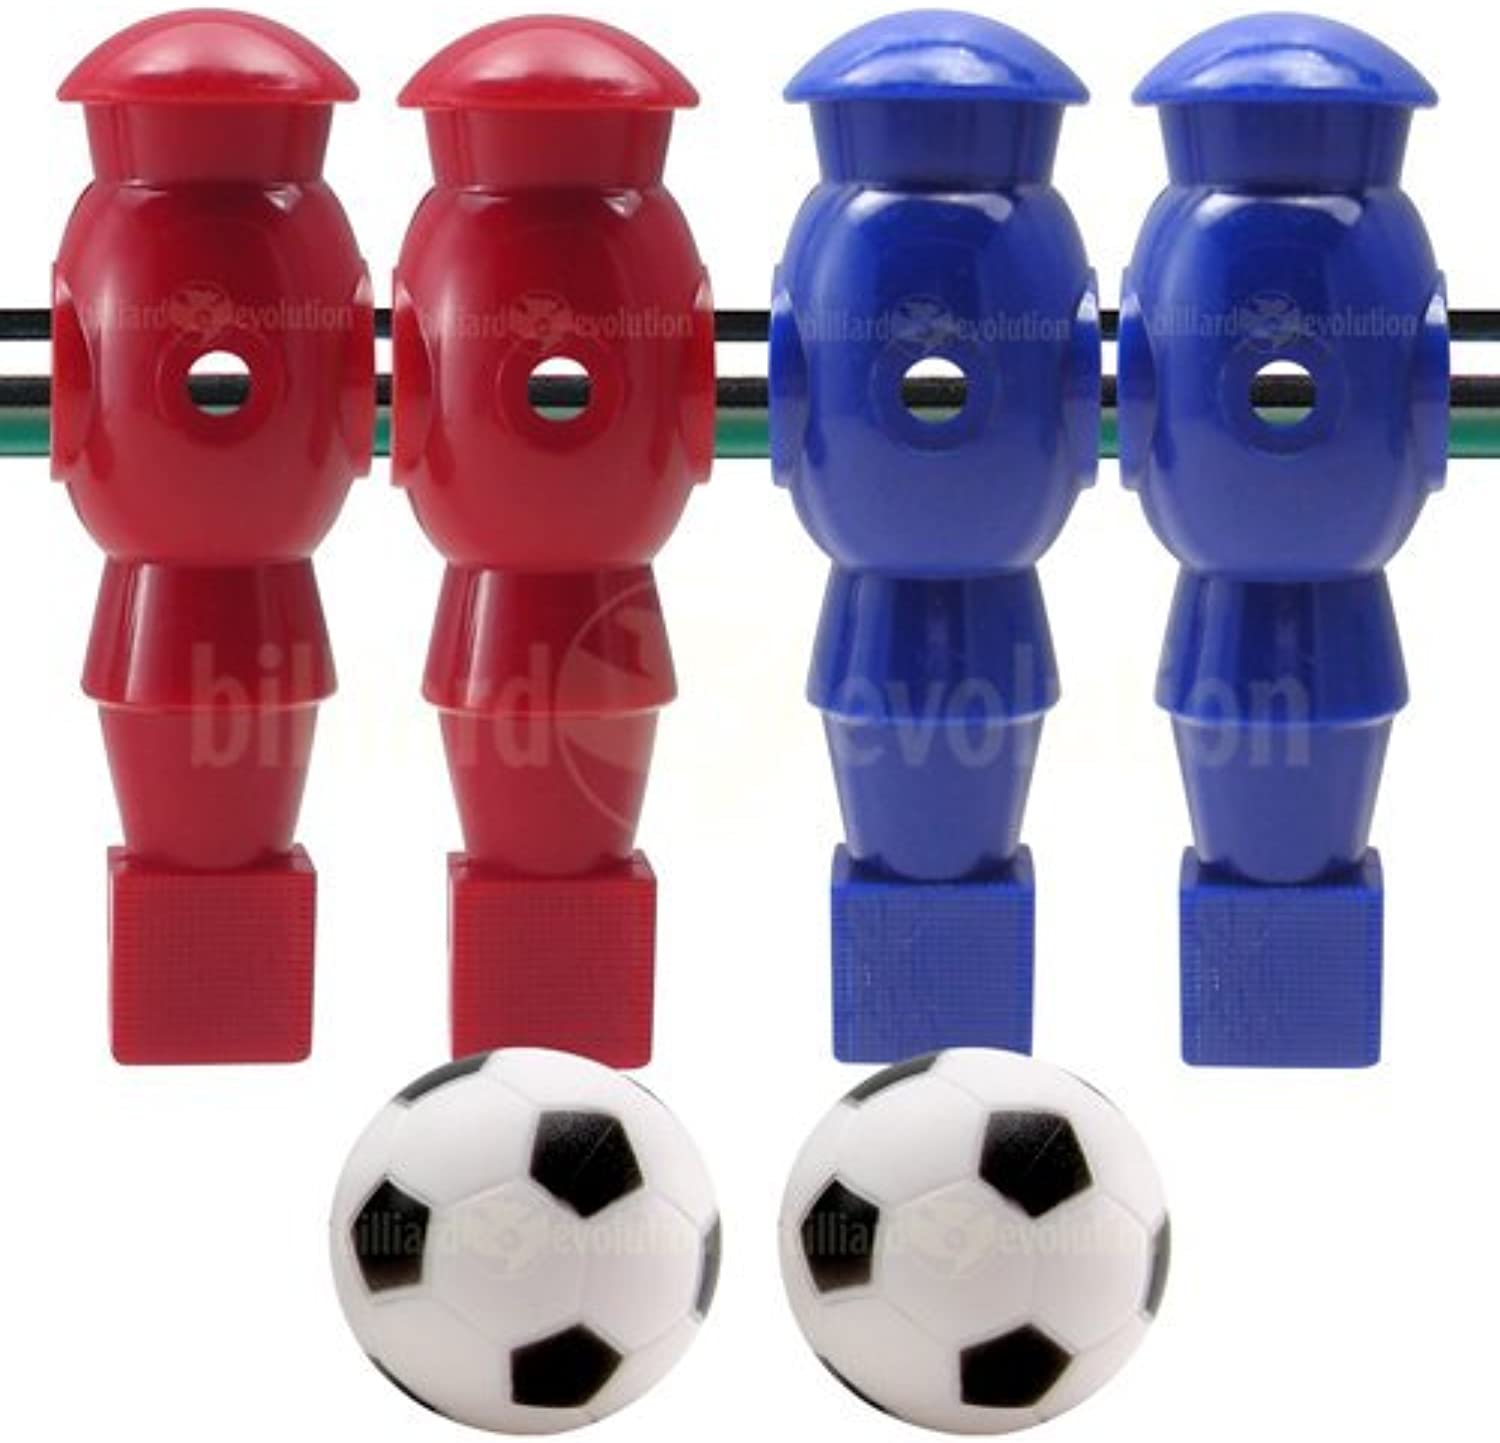 4 Red and blueee Robotic Foosball Men and 2 Soccer Balls